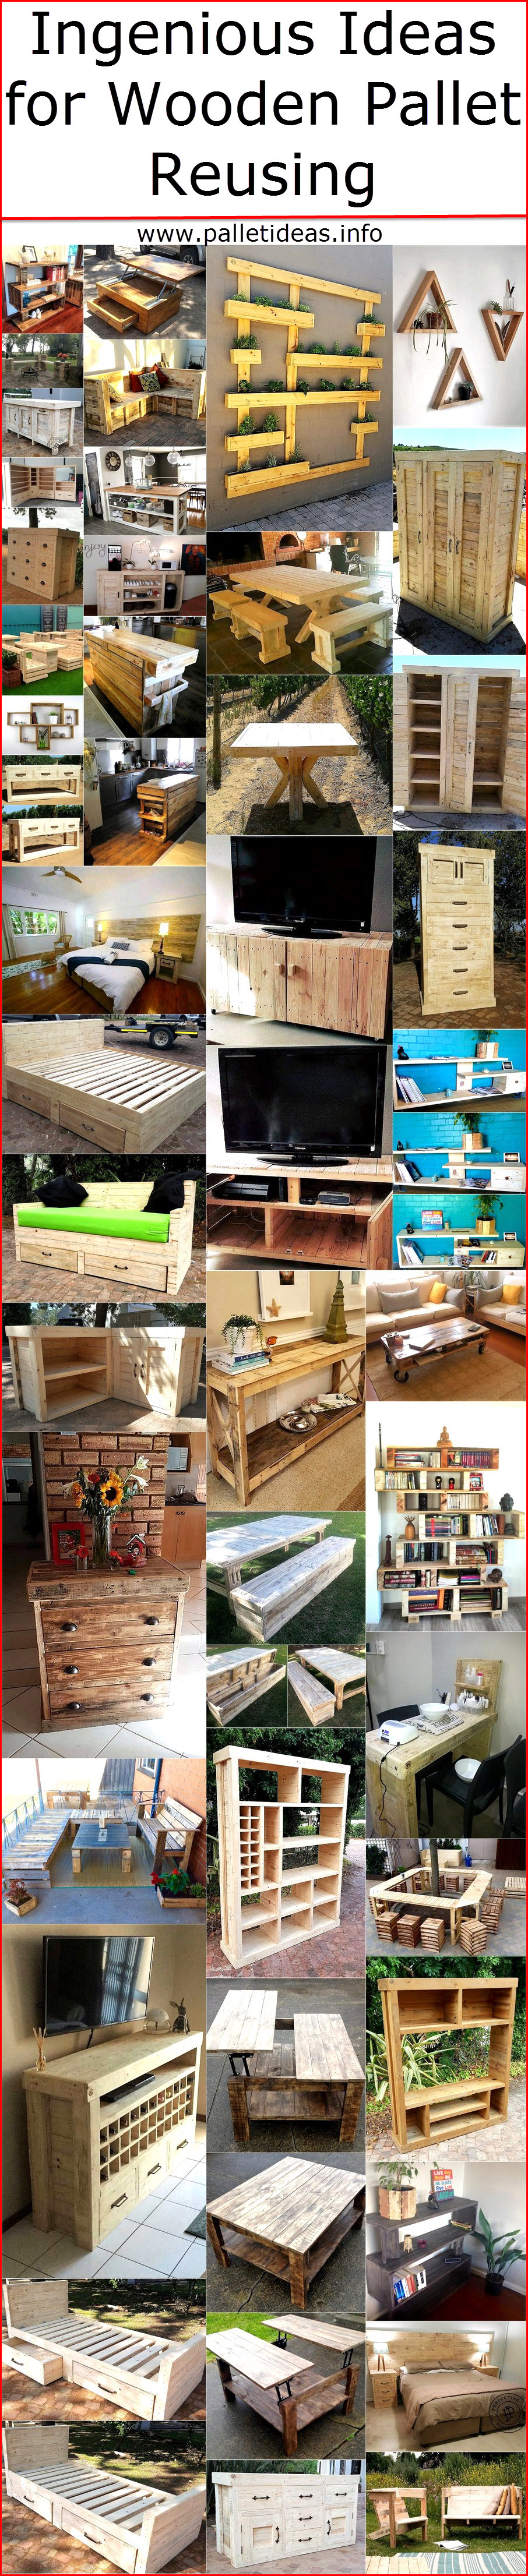 Ingenious Ideas for Wooden Pallet Reusing | Pallet Ideas